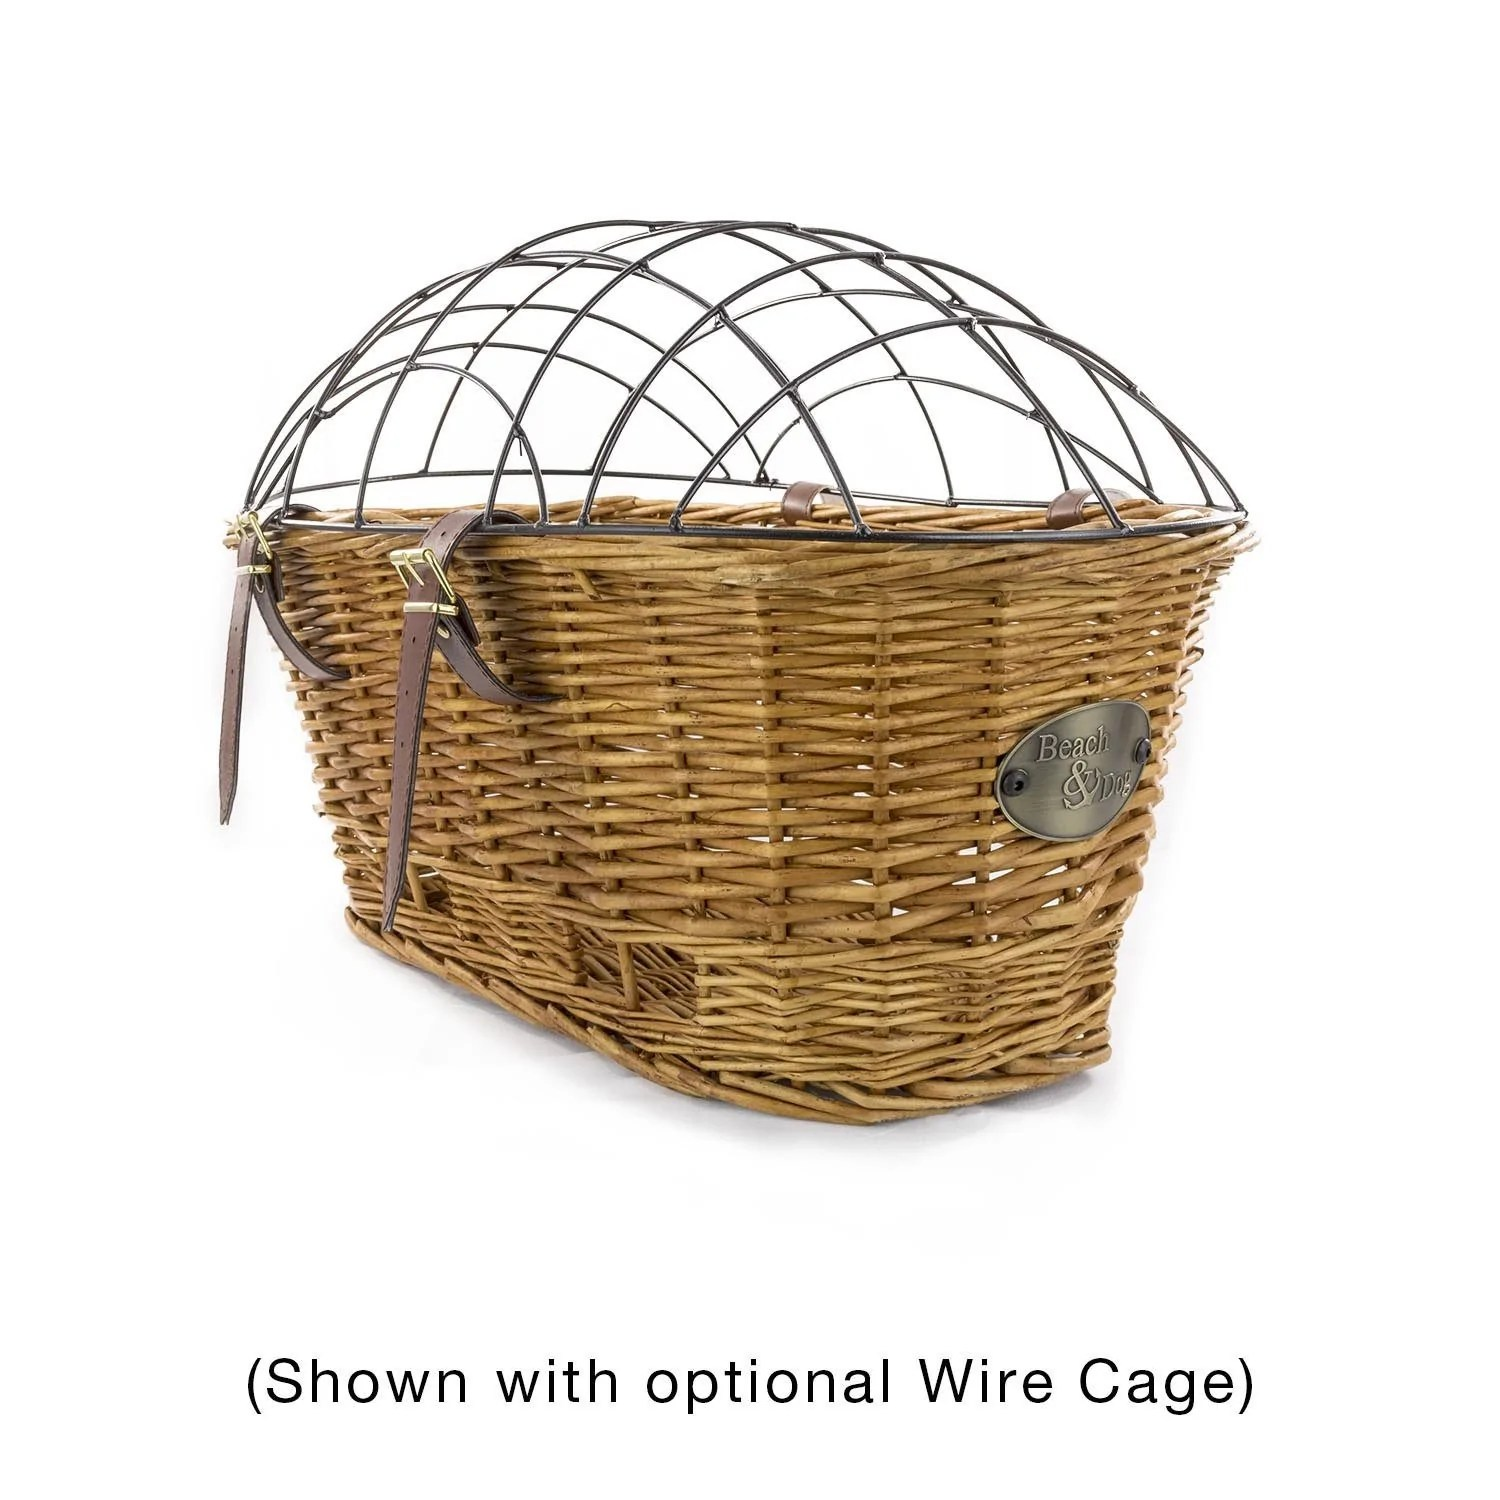 Bike Basket Big W Myrtle Beach Rear Mount Bike Basket With Cage Beach Dog Co